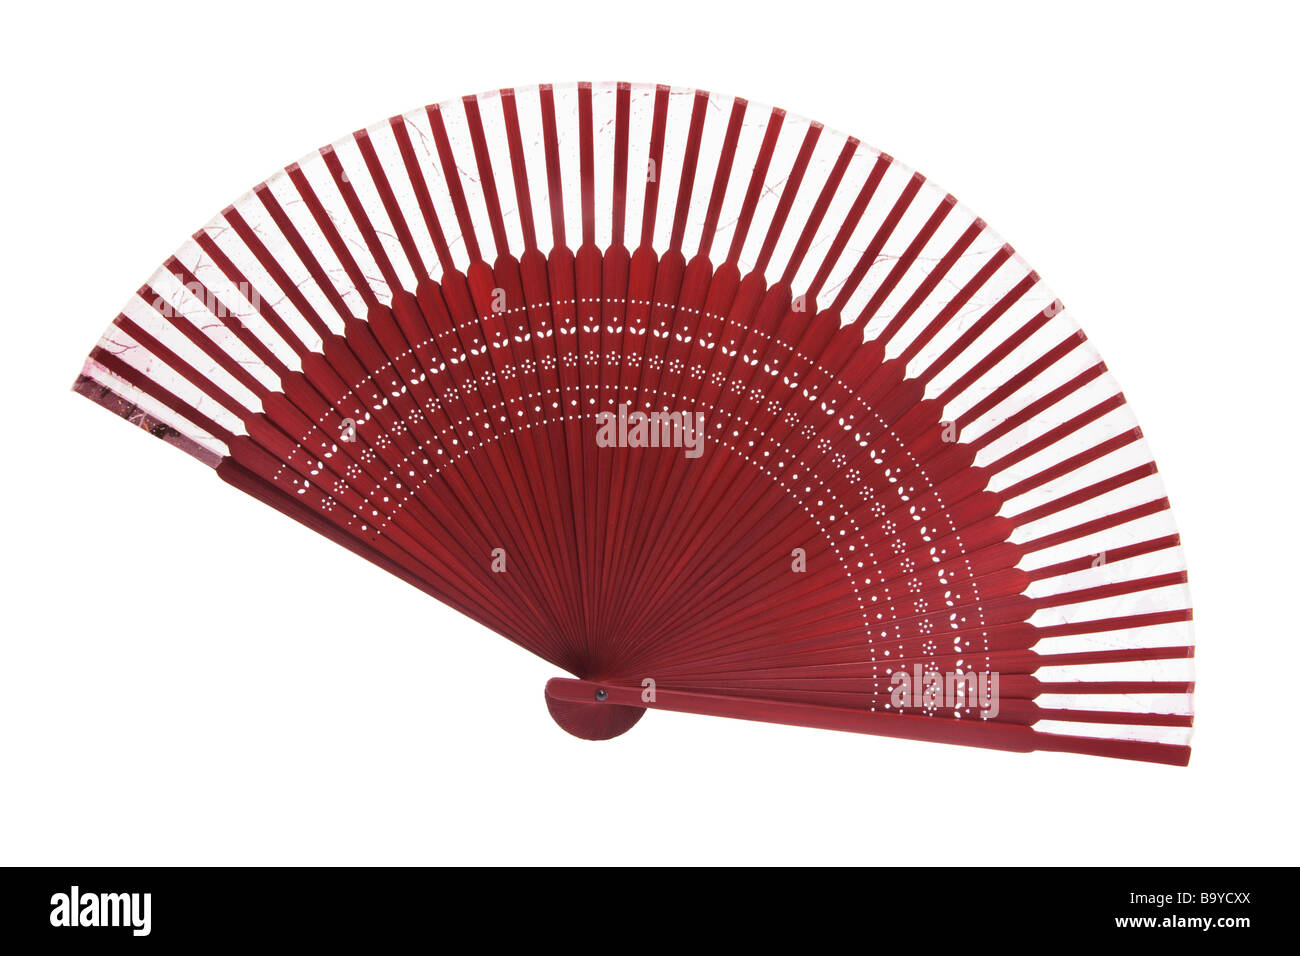 Ventilateur pliant chinois Photo Stock